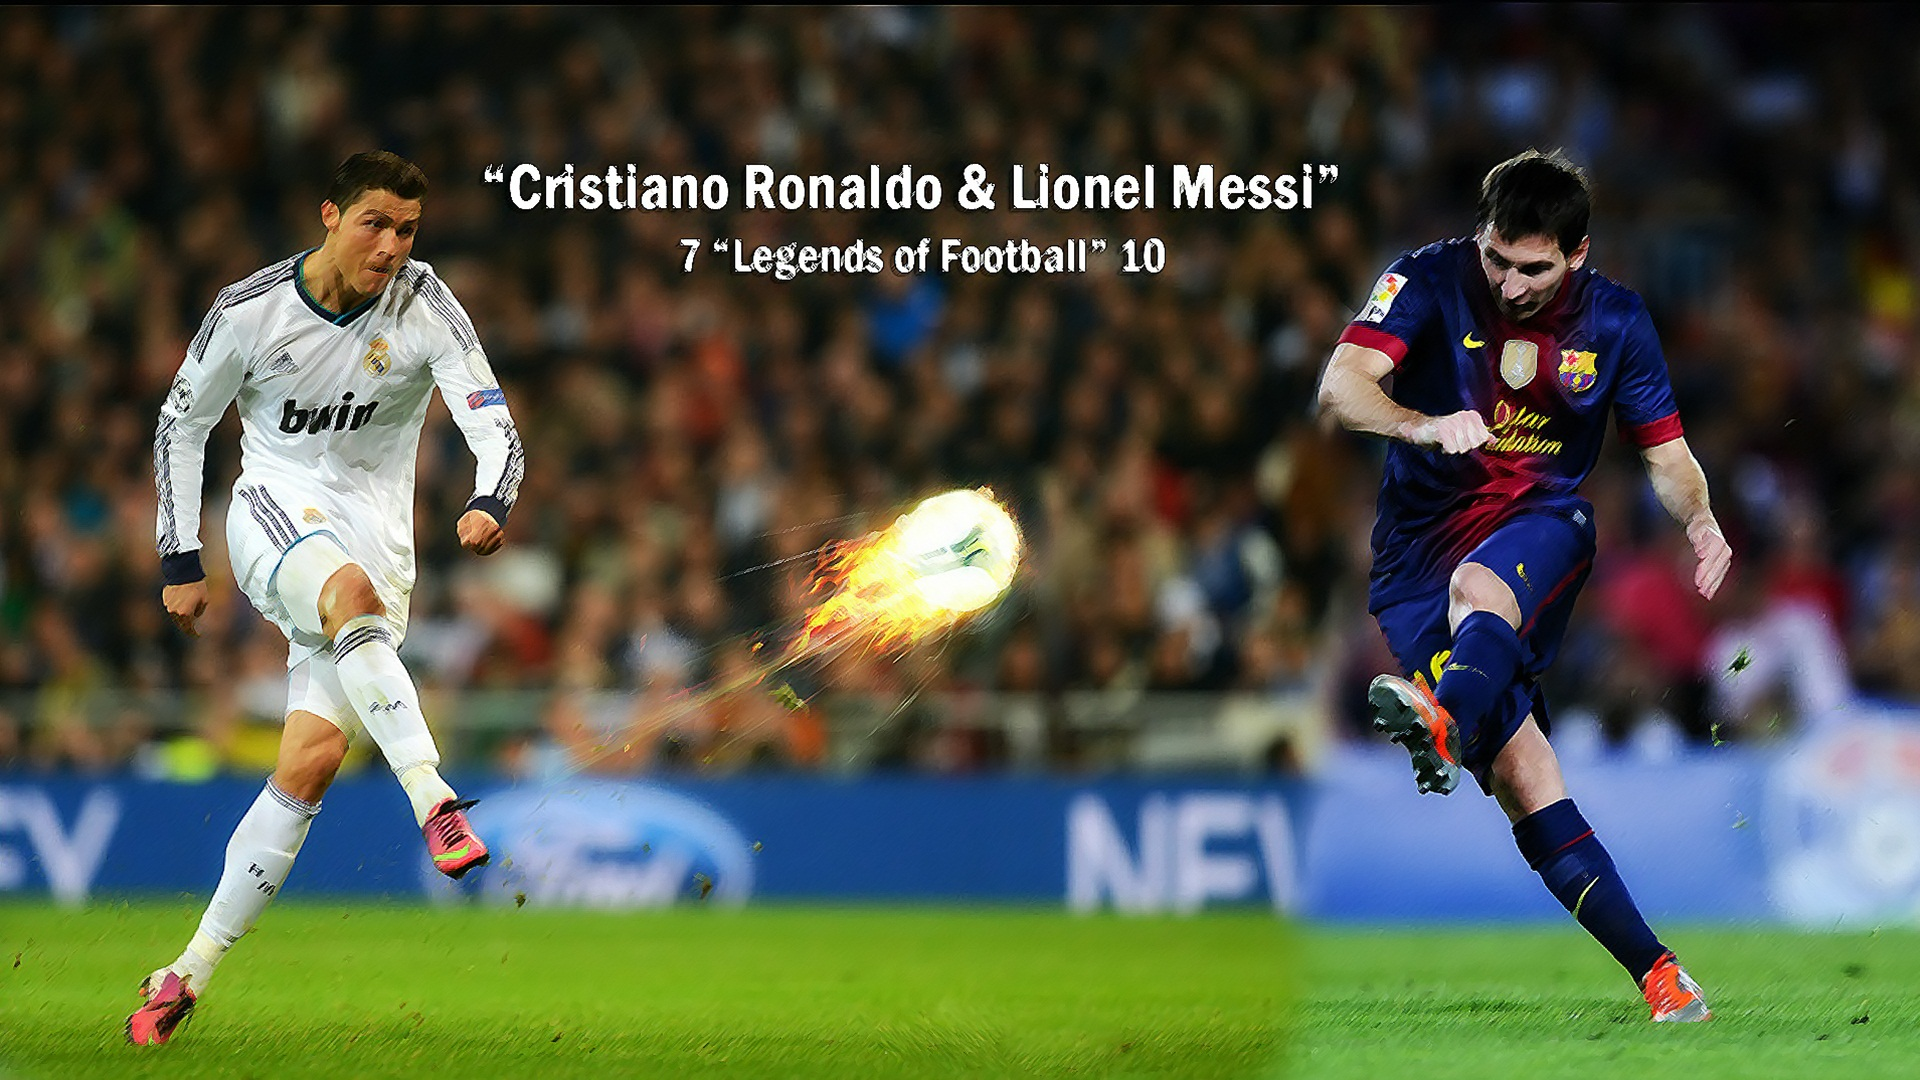 cristiano-ronaldo Full HD Wallpaper and Background Image ...